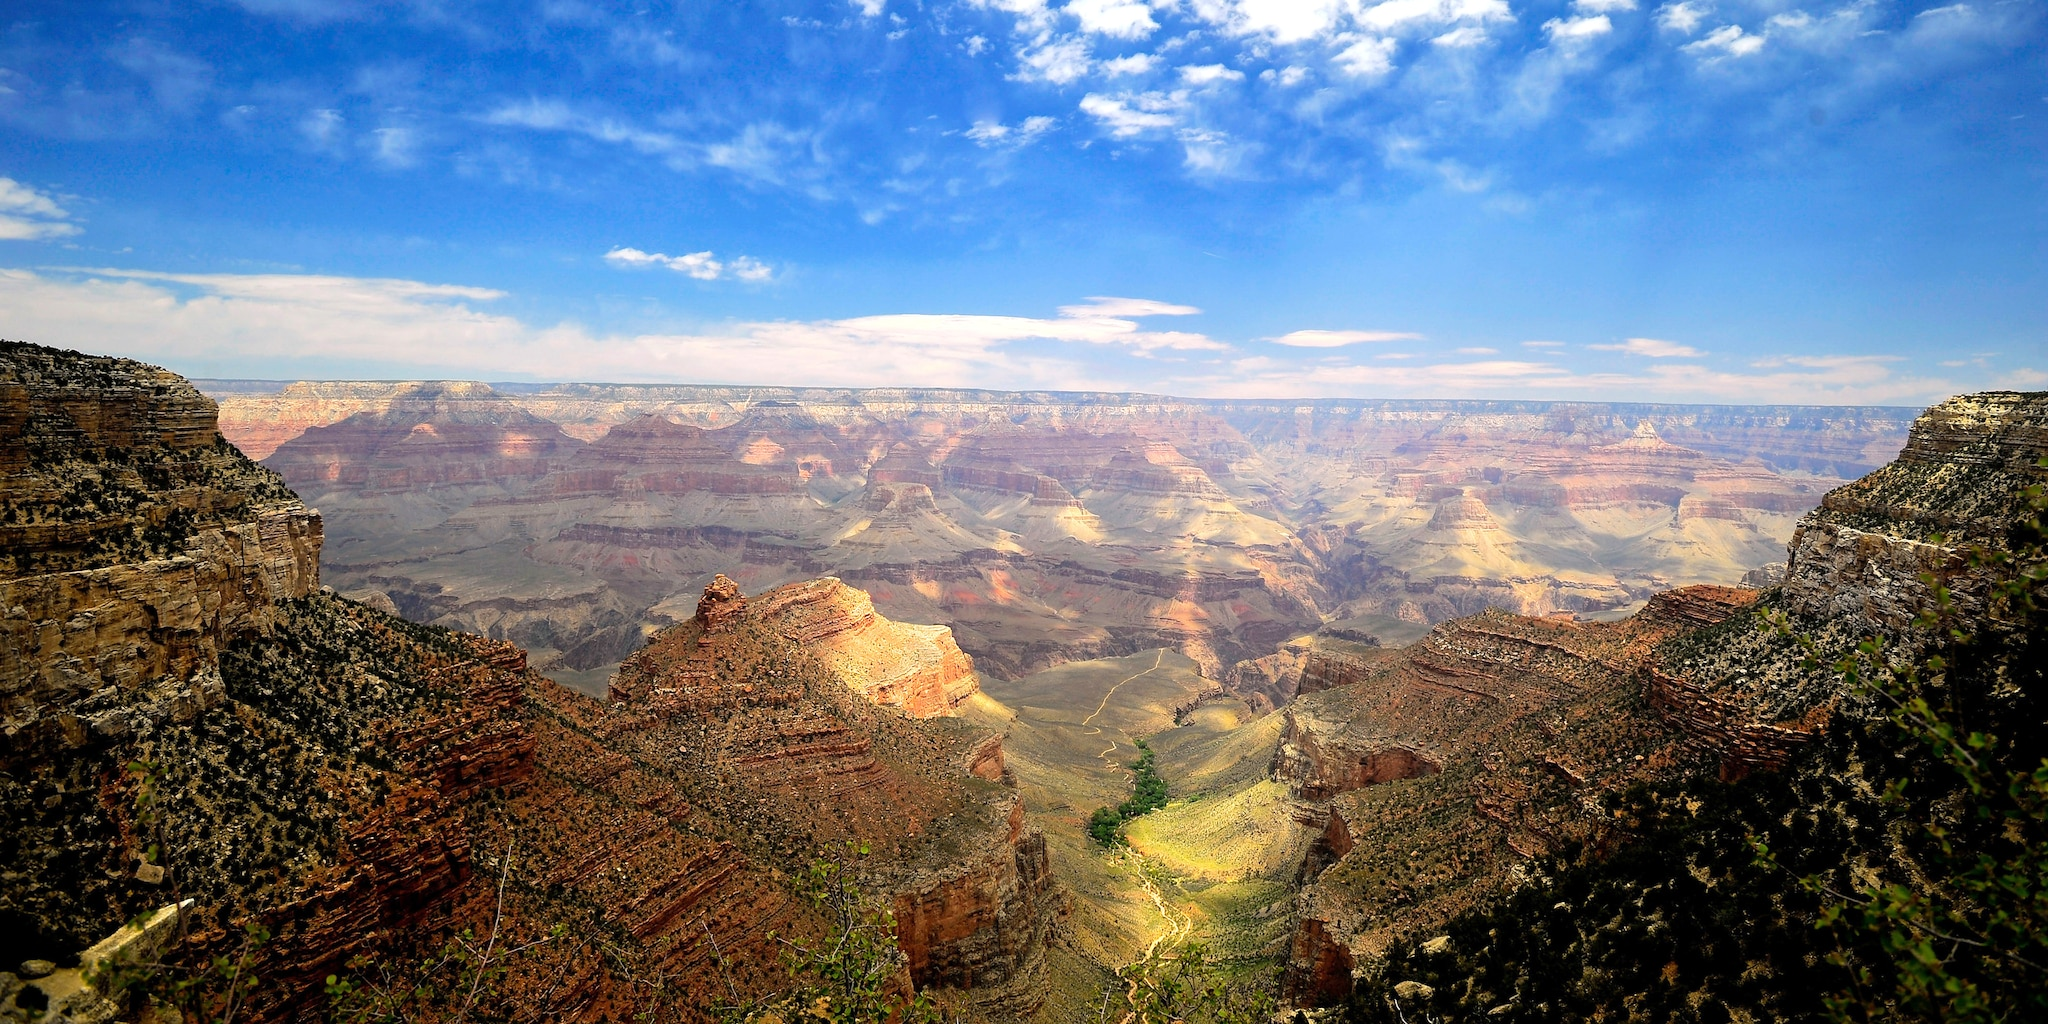 Ancient layers of rock form the walls of the Grand Canyon's South Rim